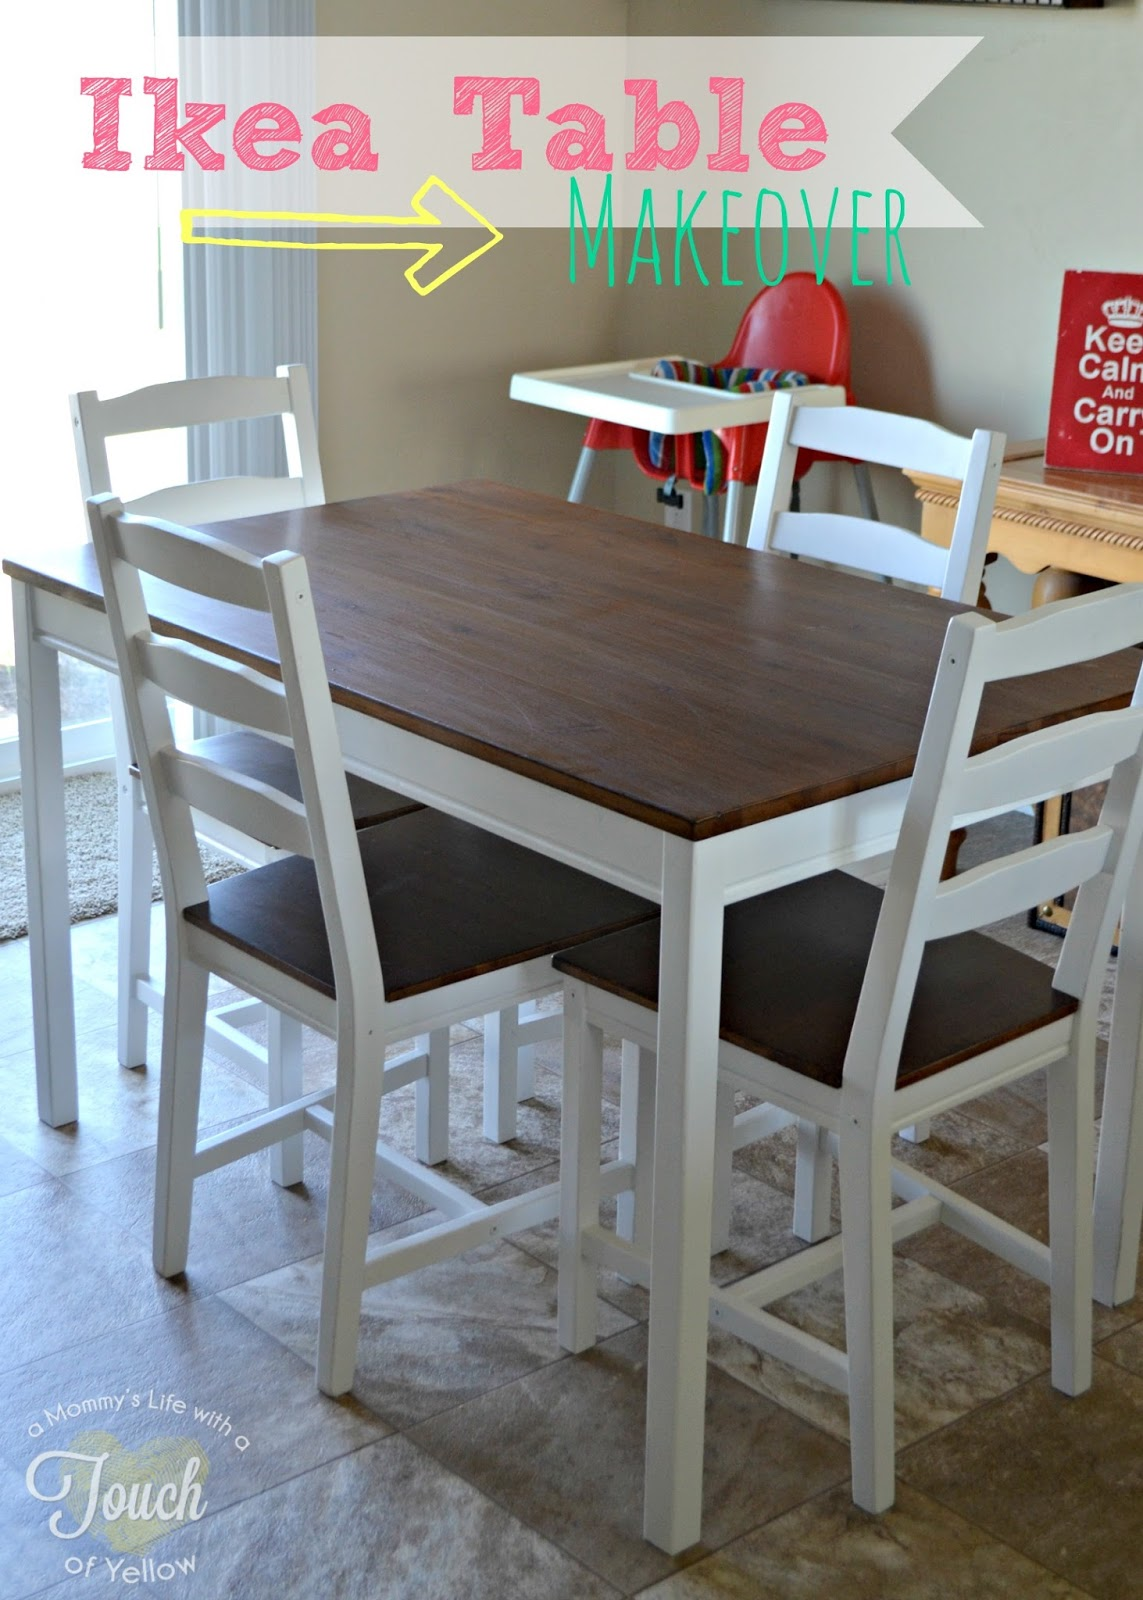 Ikea dining room storage - Ikea Kitchen Table Makeover Tutorial Kitchen Table Ikea